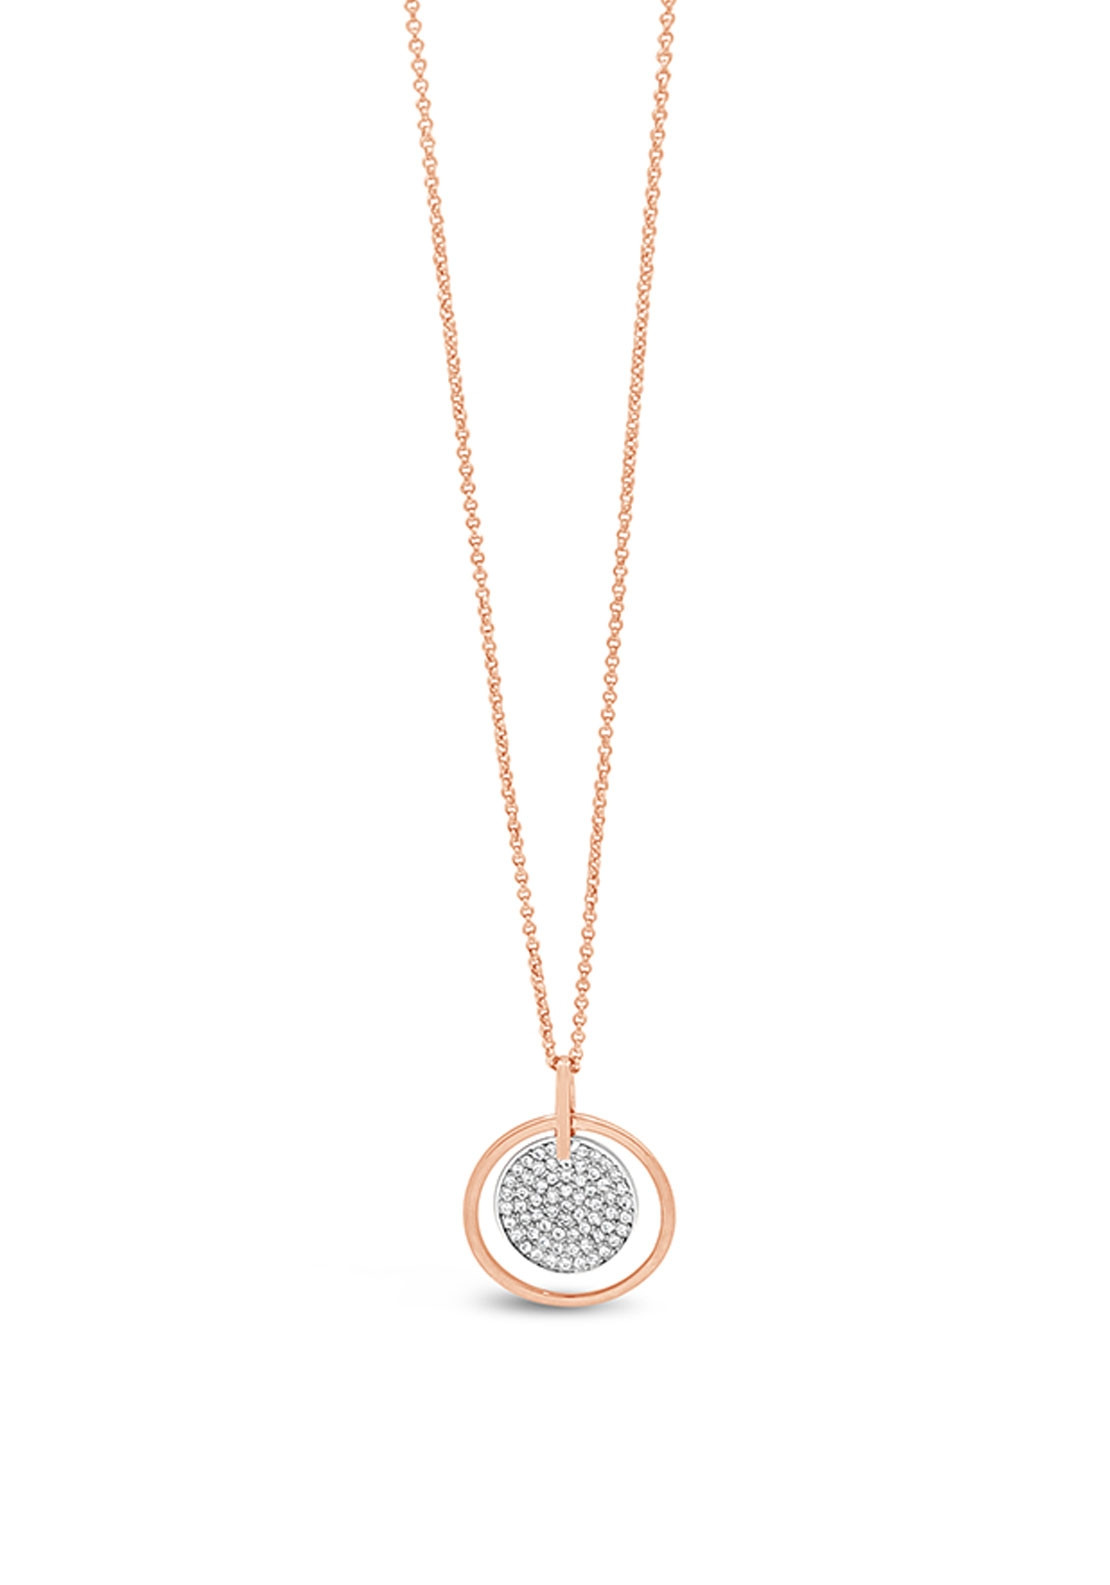 Absolute Rose Gold Necklace With Diamante Disc N2046mx Mcelhinneys